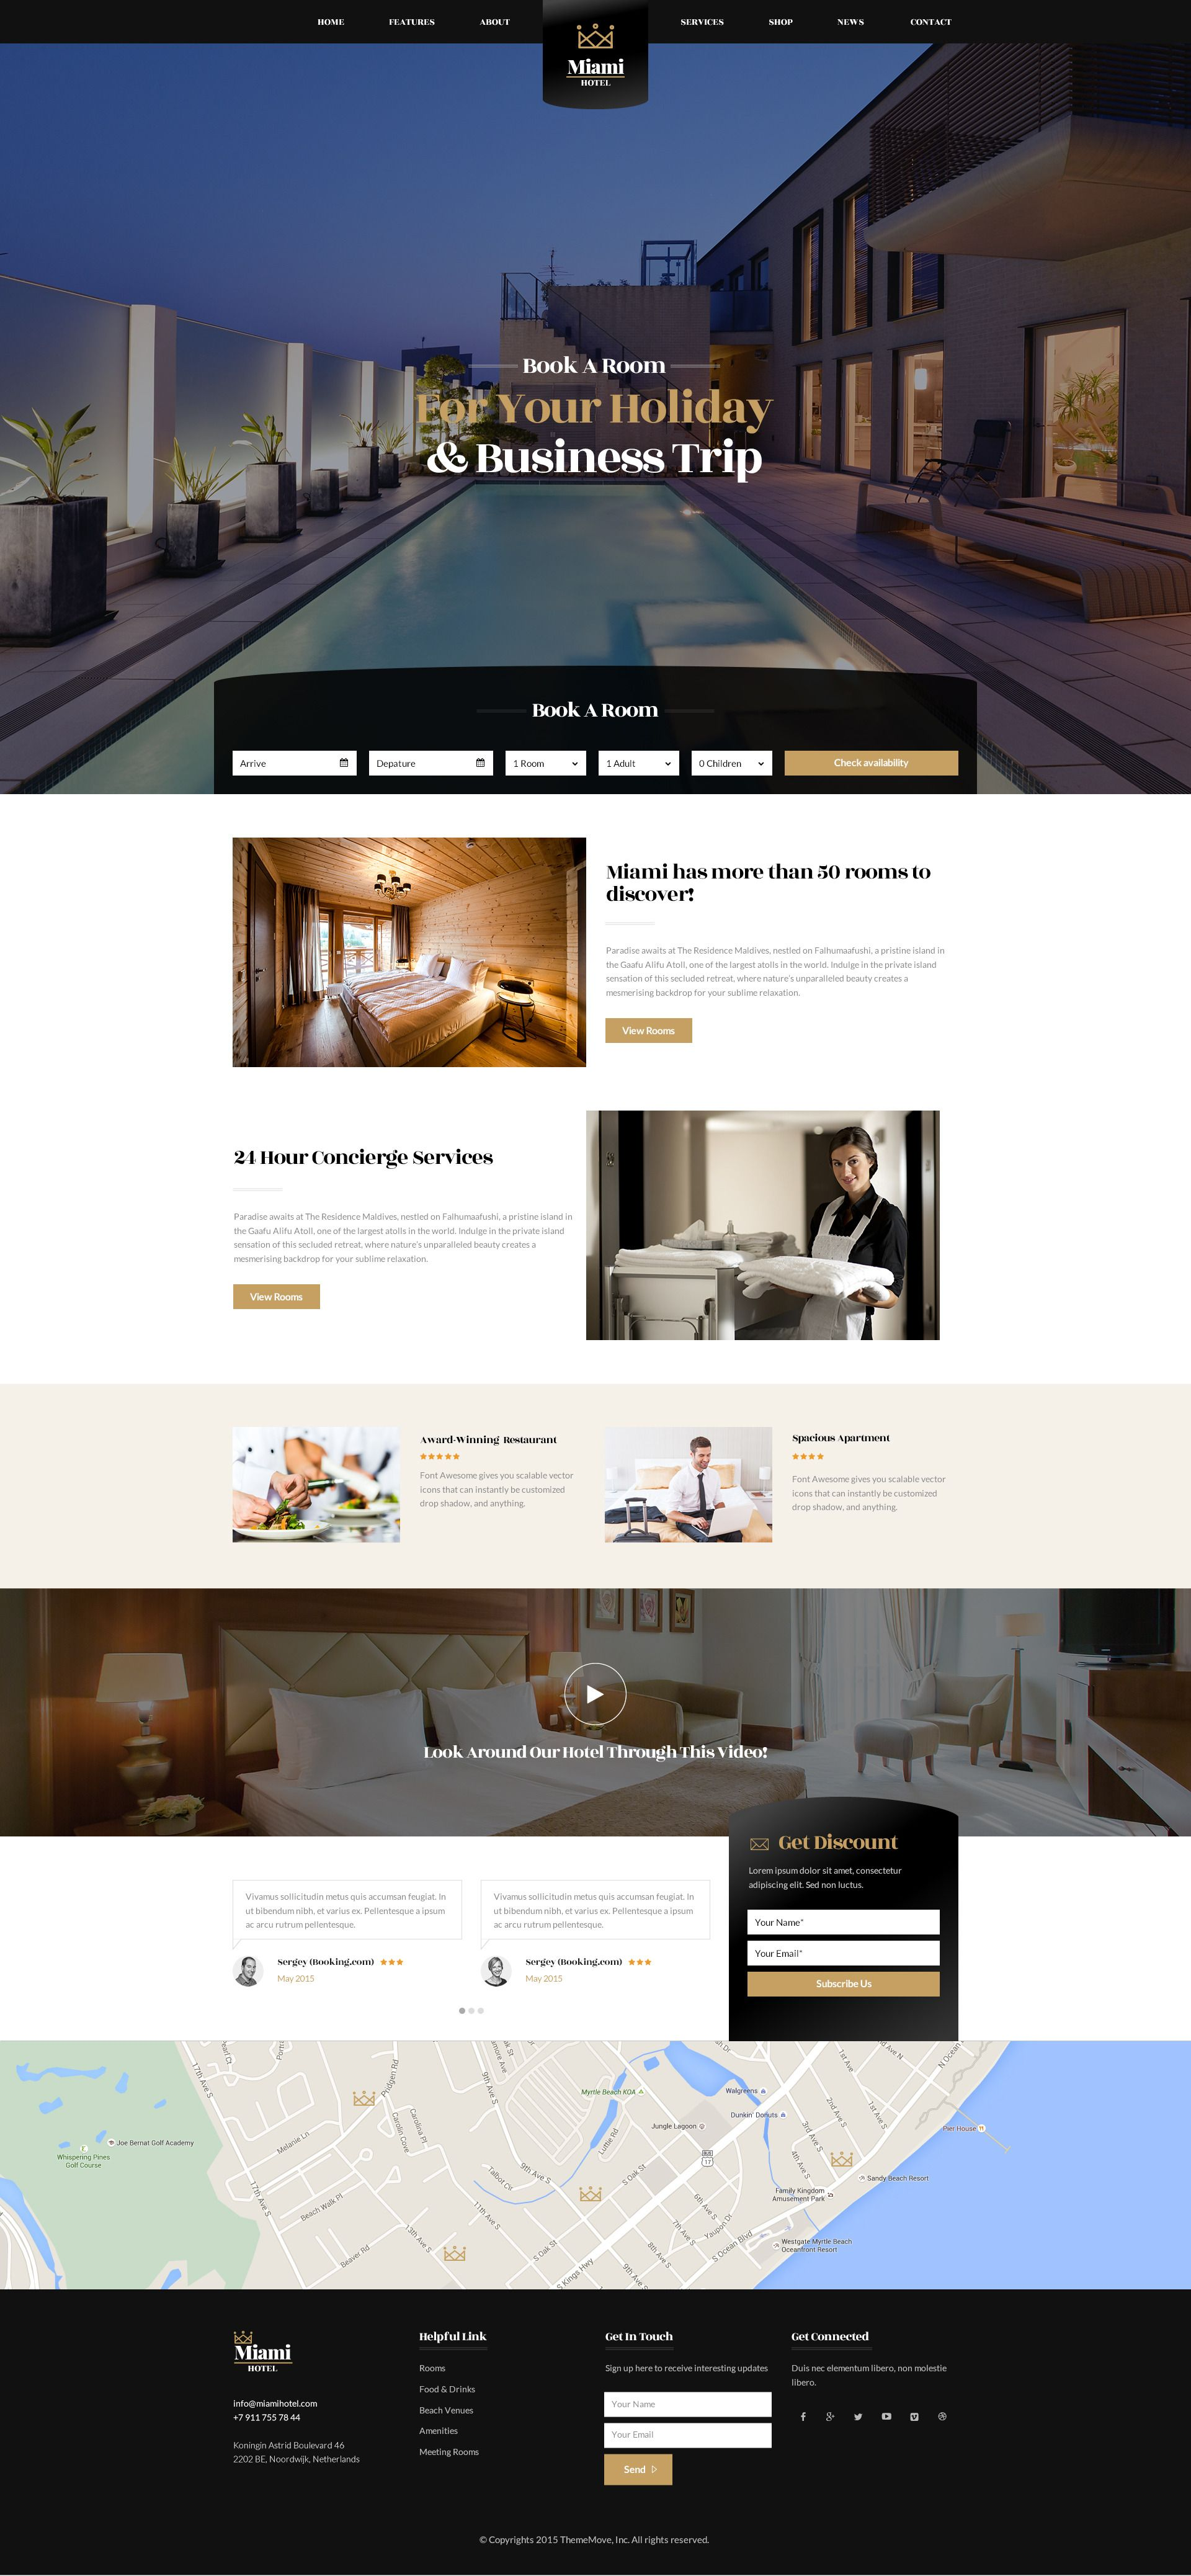 Hotel Room Types: Exquisite Hotel PSD Template Miami Is The Template